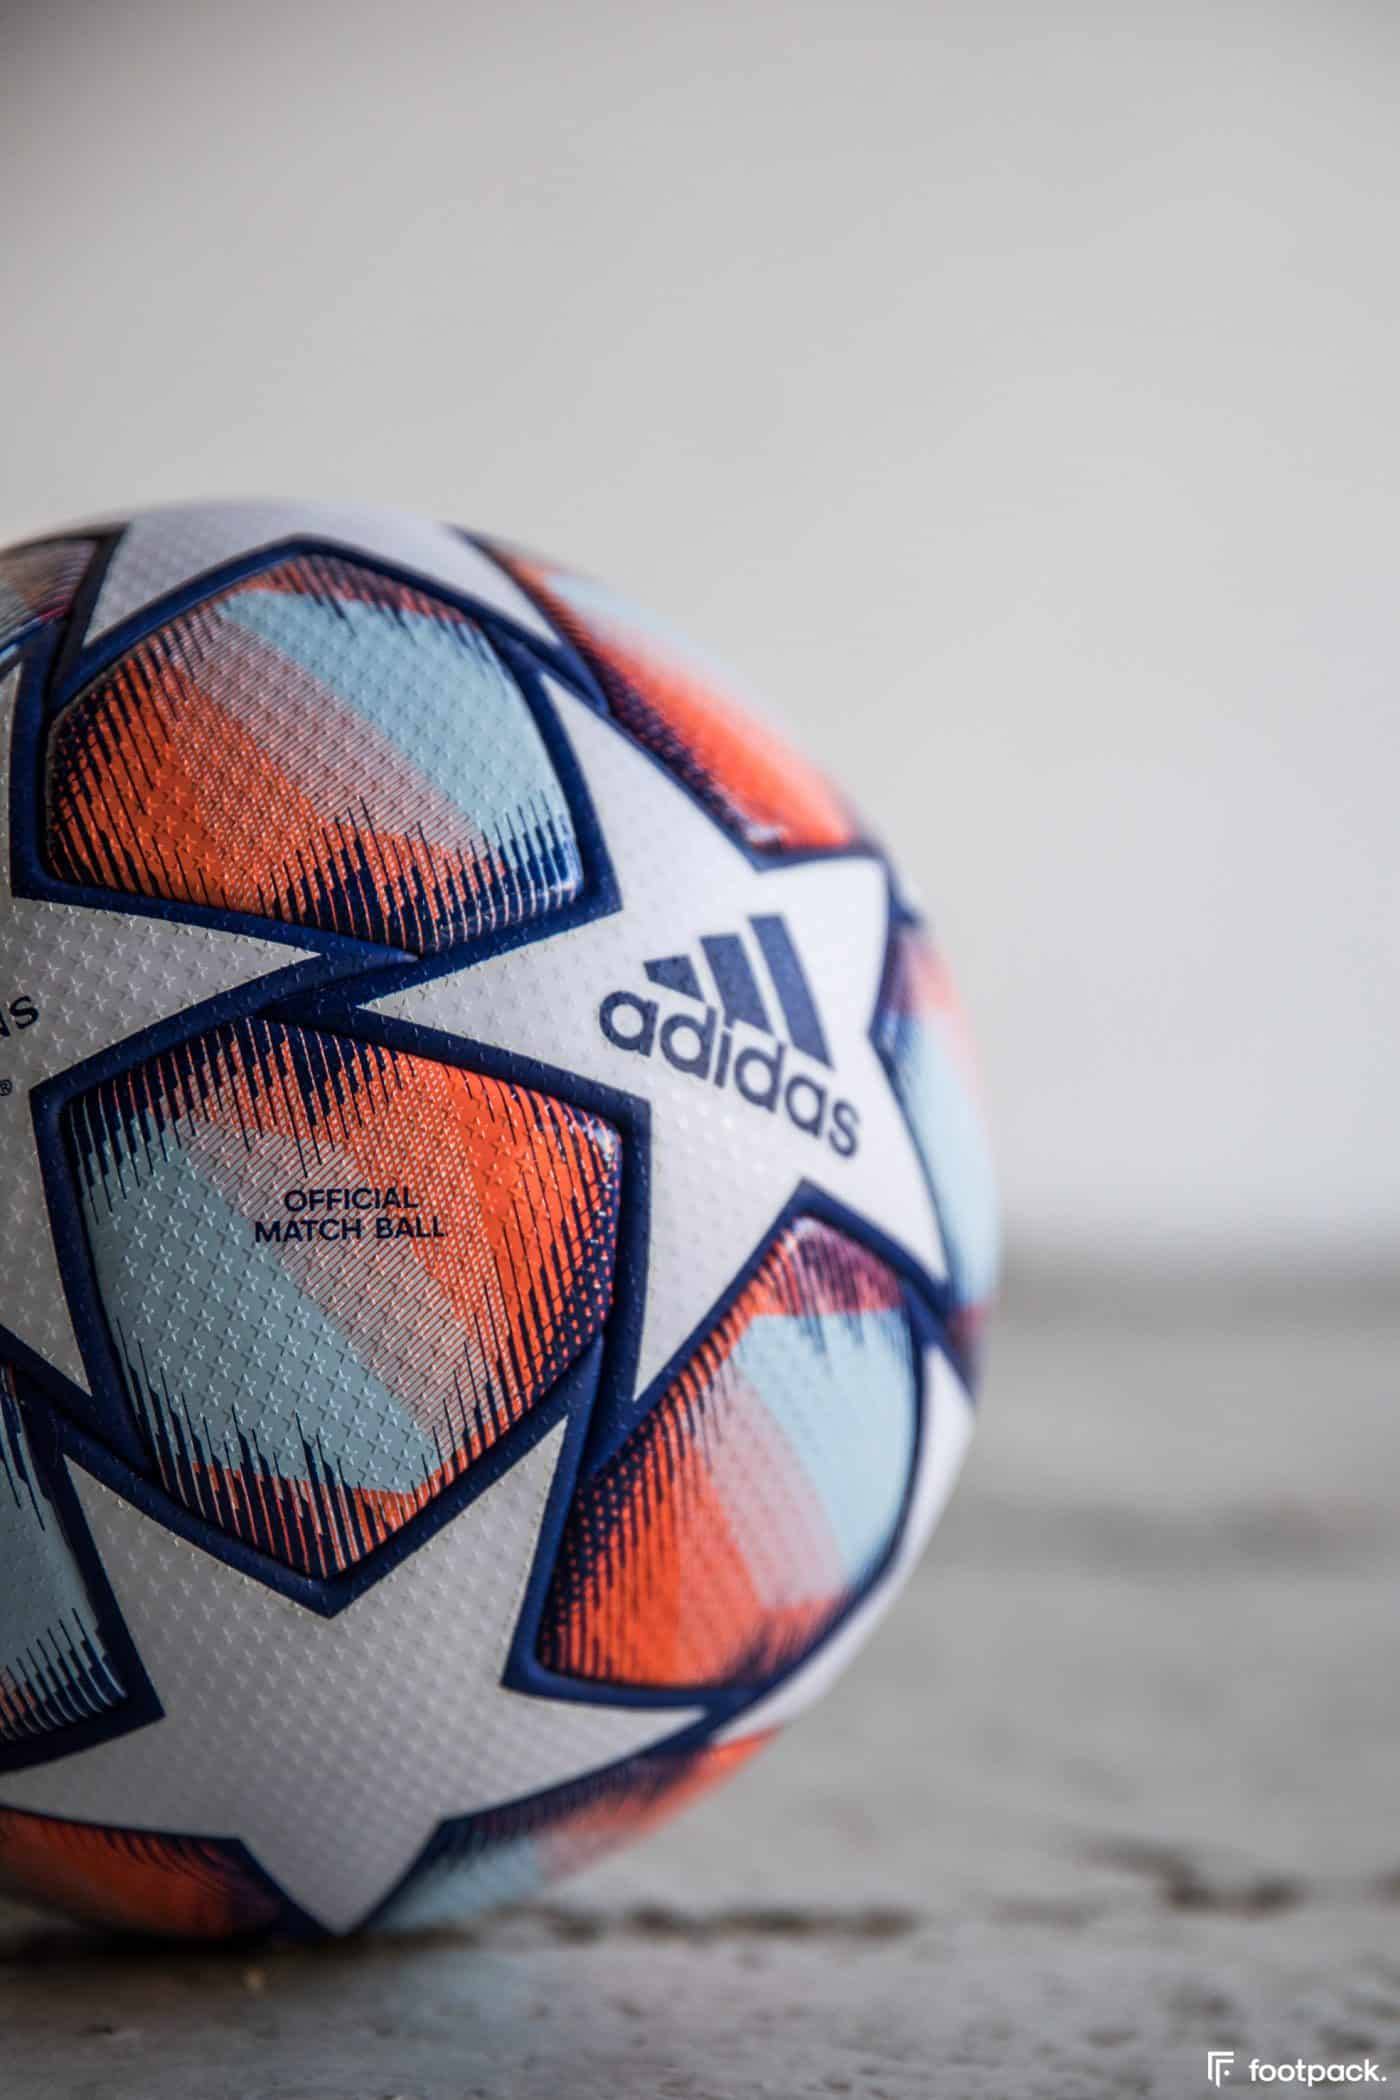 ballon-champions-league-2020-2021-adidas-footpack-3